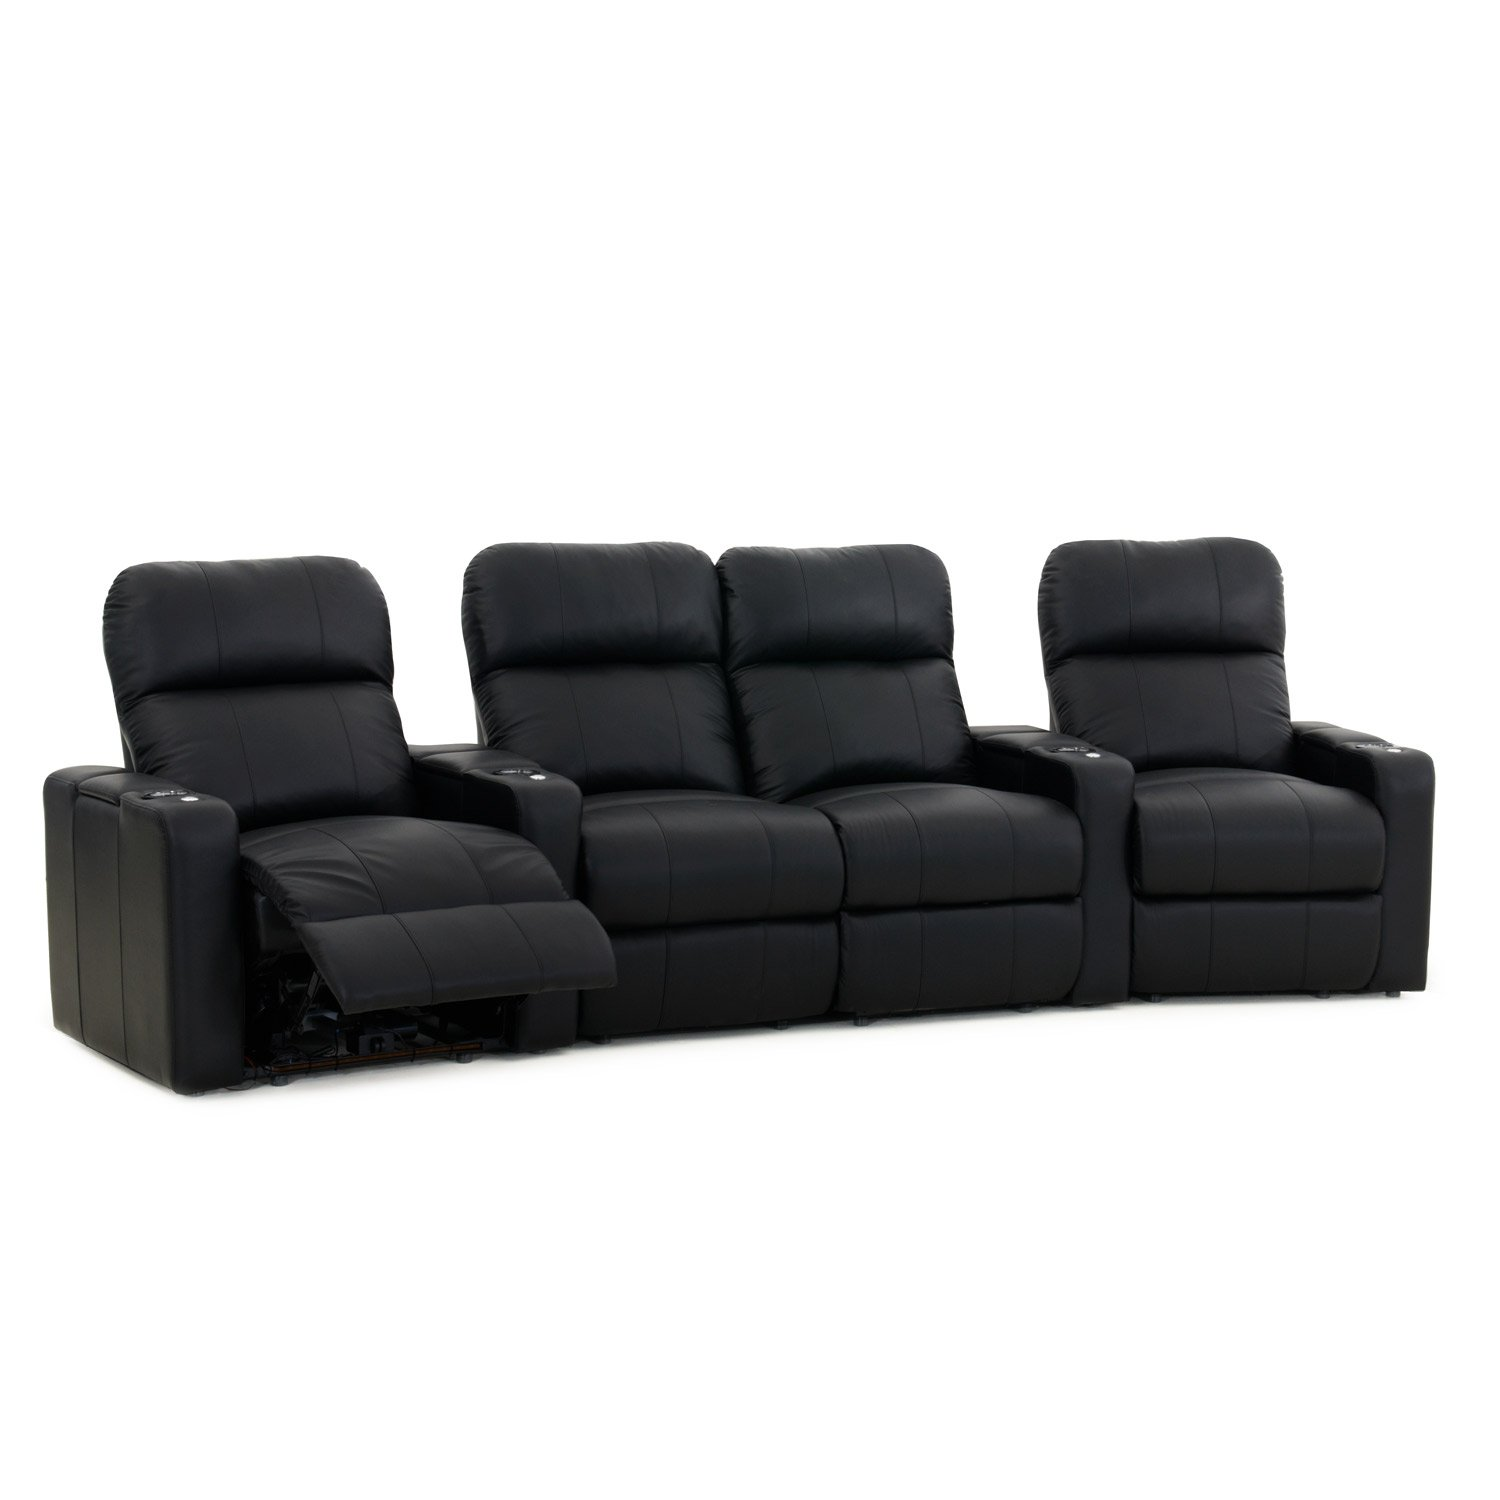 Octane Turbo XL700 Black Bonded Leather with Manual Recline (Row of 4 Middle Loveseat Curved) by Octane Seating